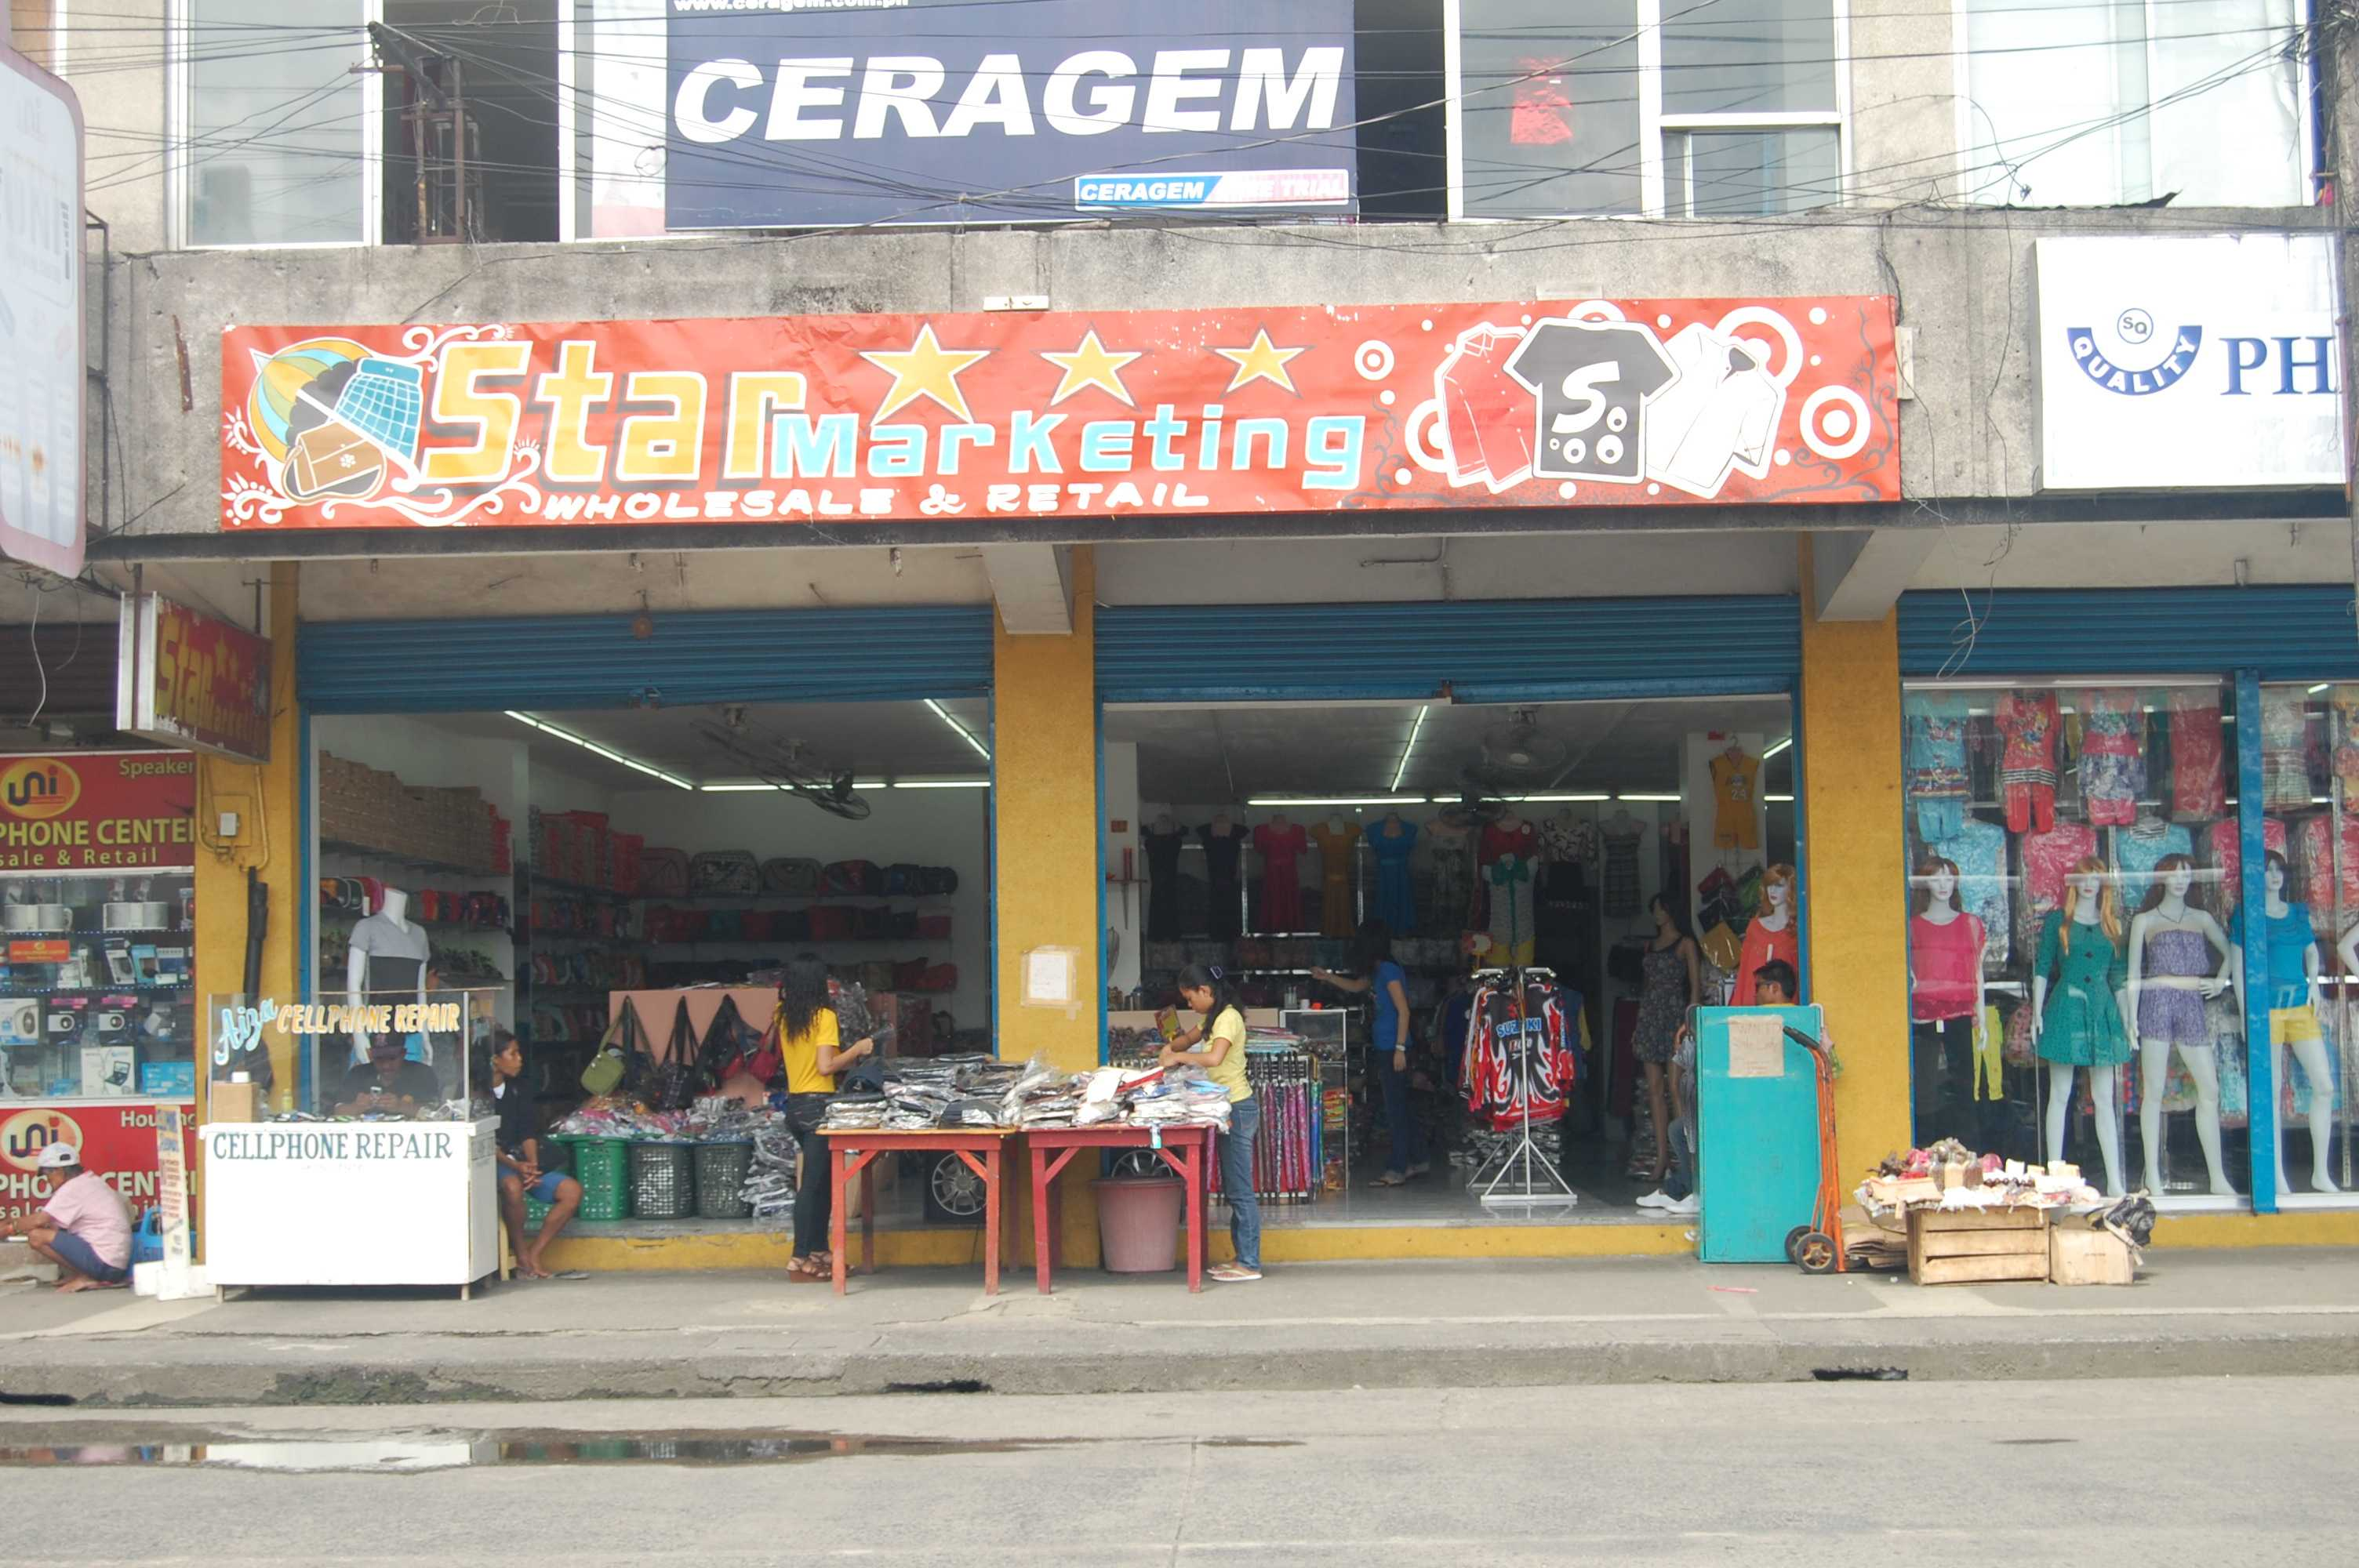 Star Marketing